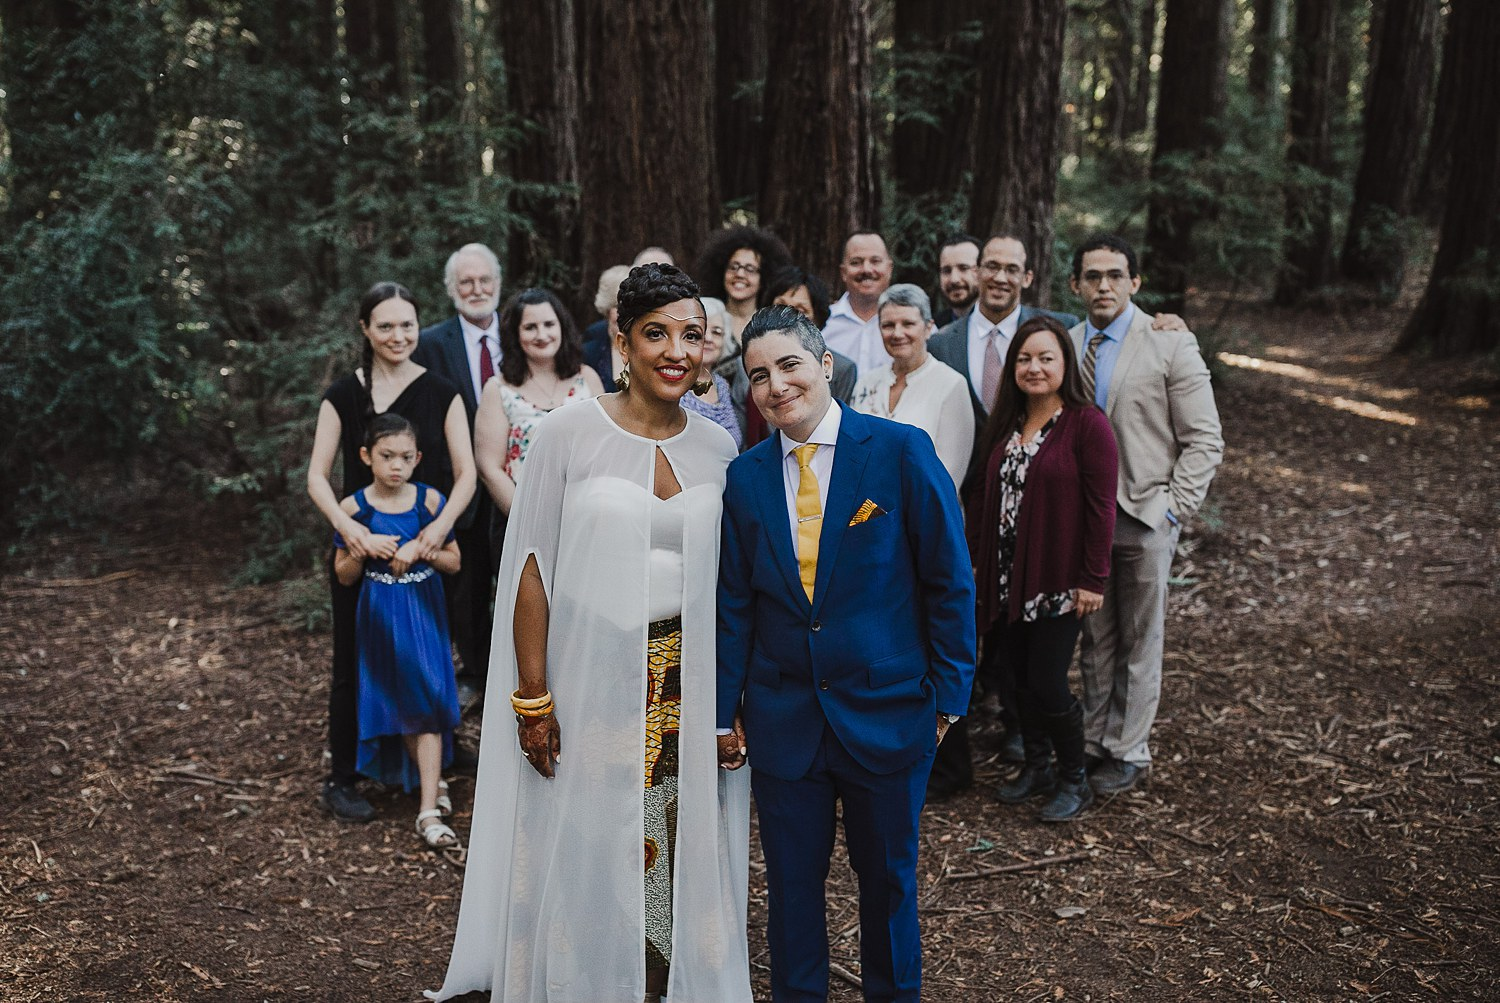 Family portraits at an intimate Oakland wedding in Joaquin Miller Park